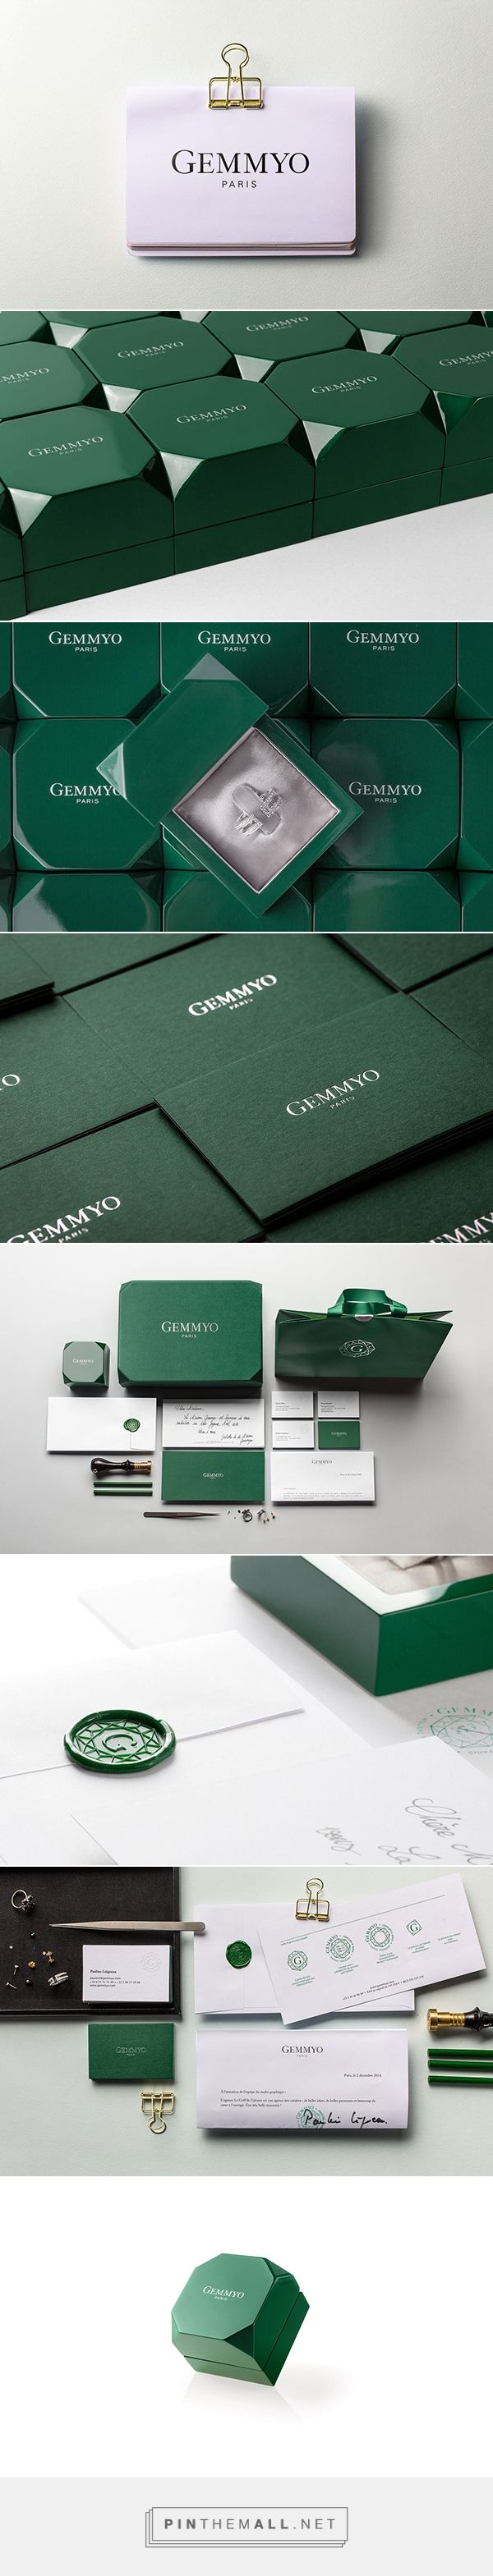 Gemmyo on Behance via Le Goff et Gabarra curated by Packaging Diva PD. Packaging branding for Gemmyo, jewellery in Paris.